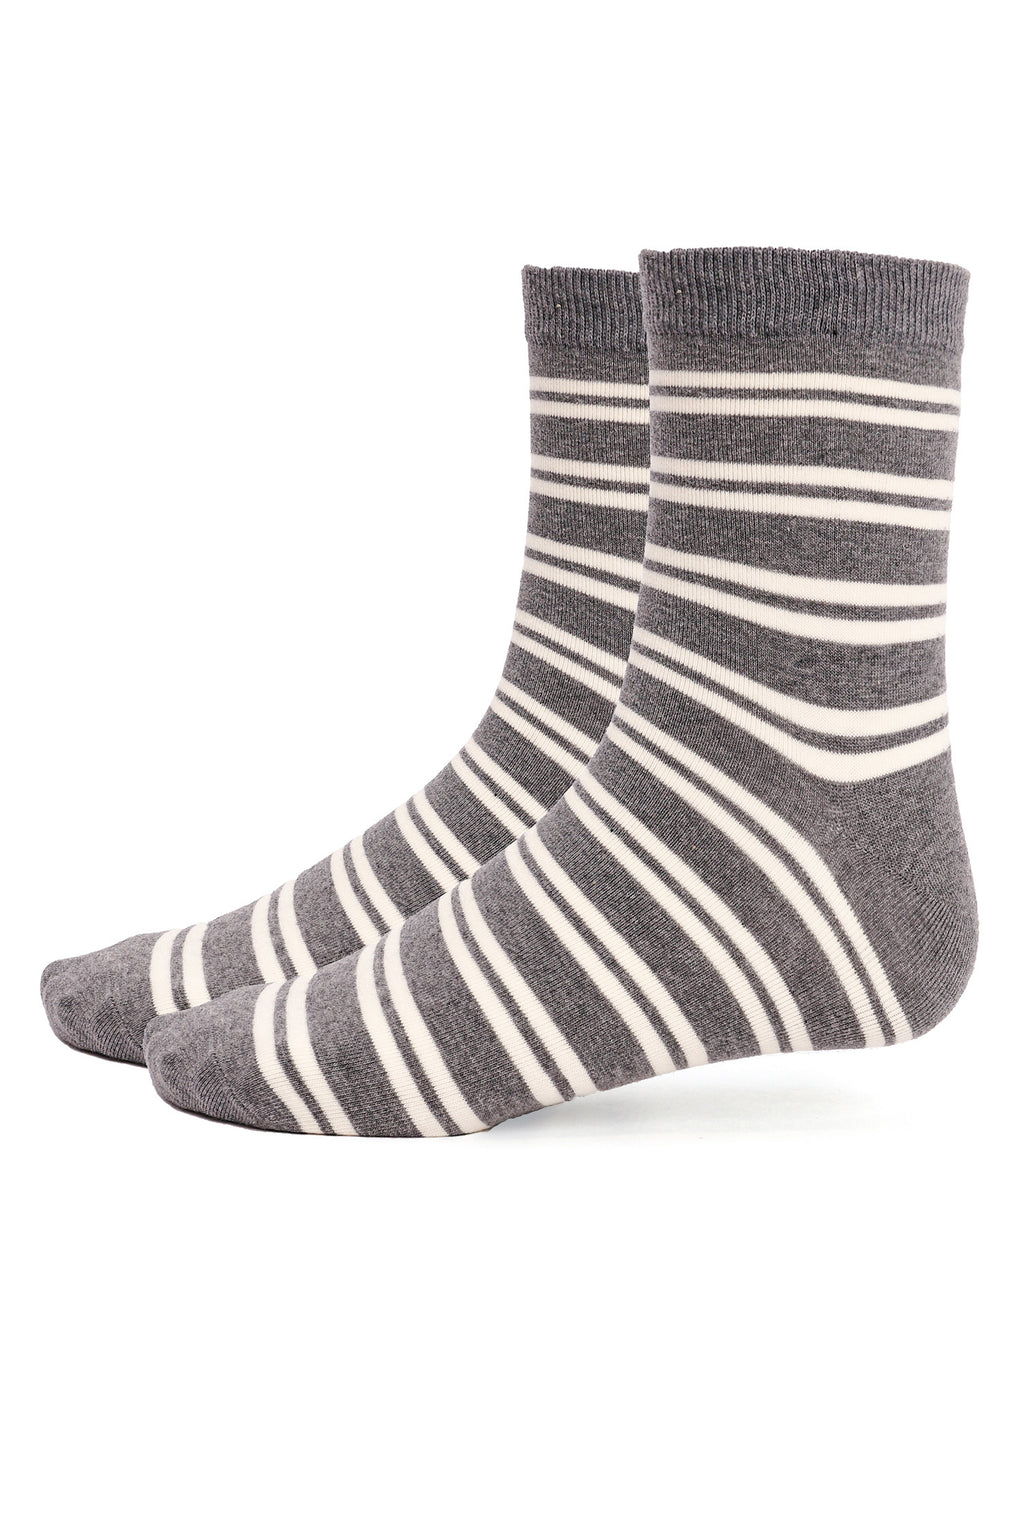 STRIPED SOCKS-GREY-WHITE